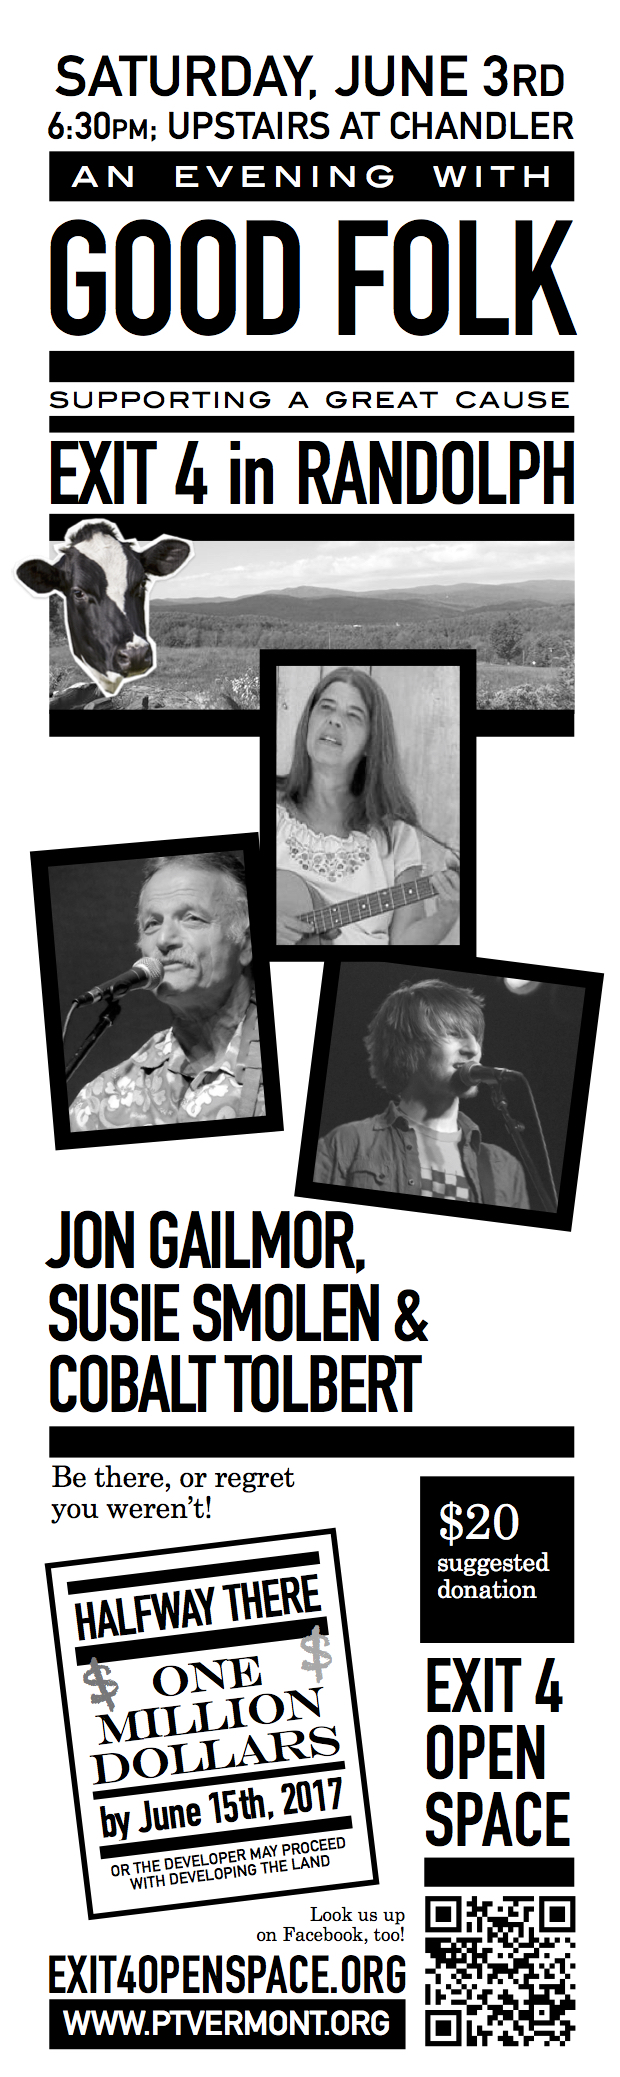 An Evening with Good Folk Supporting a Great Cause_ Starring John Gailmore_ Susie Smolen and Randolphs_s own_ Cobalt Tolbert Saturday_ June 3_ 6_30 pm Upstairs at the Chandler_ Randolph Suggested donation at the door will be _20.